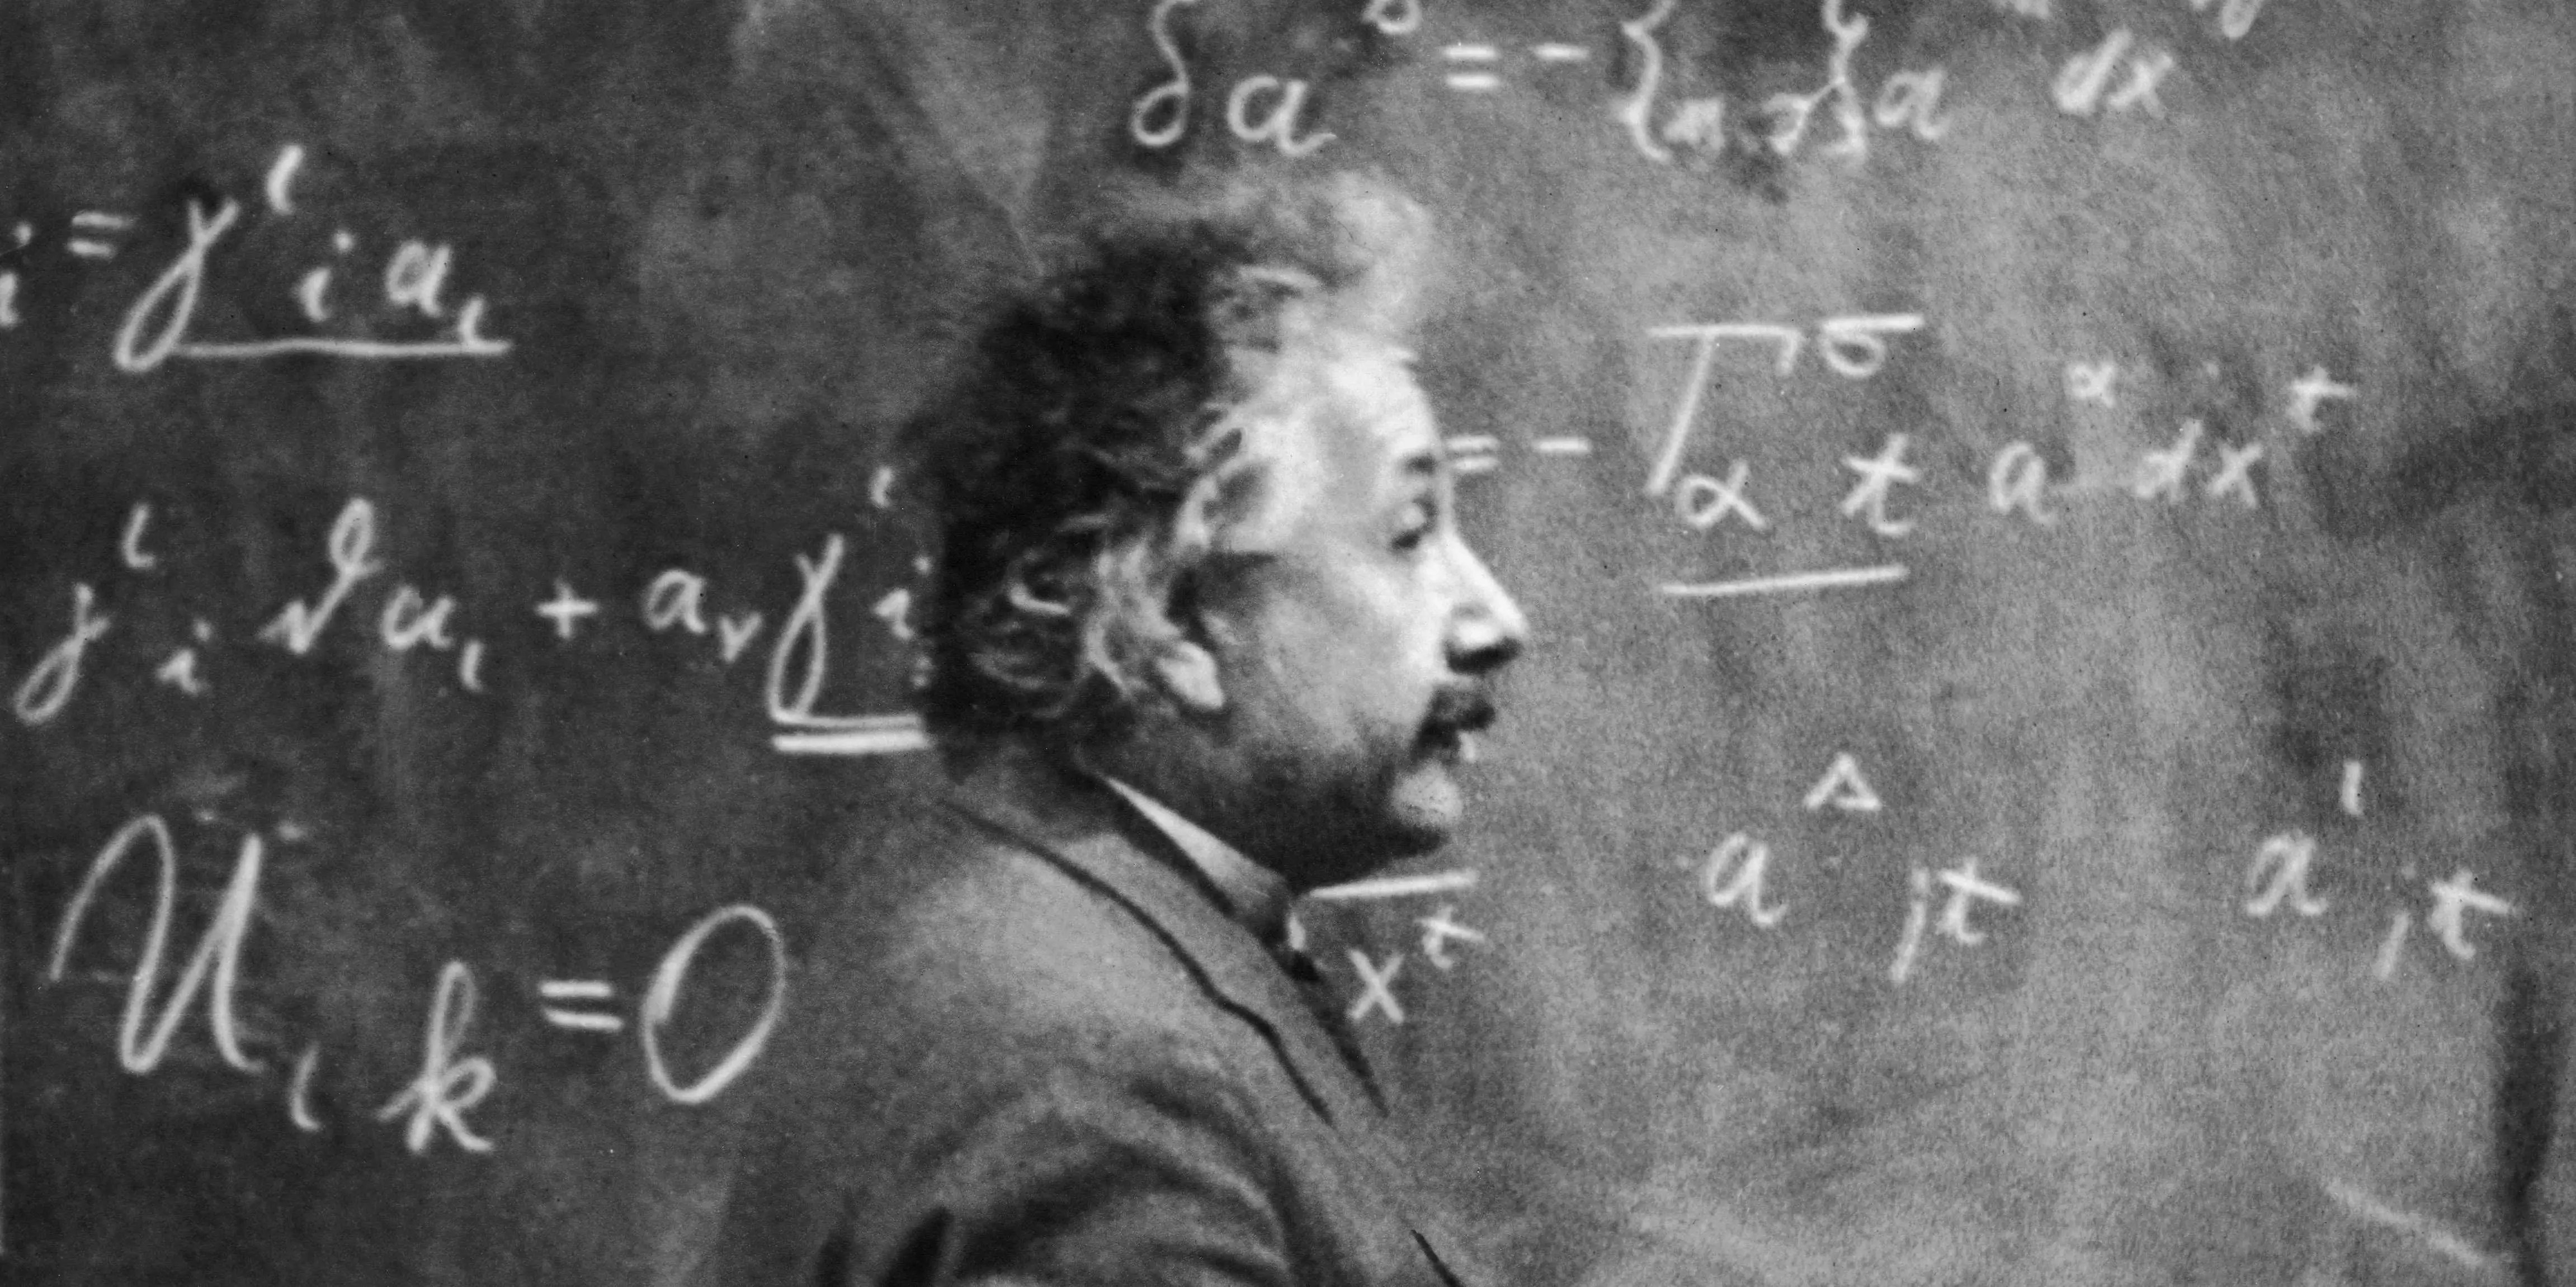 https://i0.wp.com/static5.businessinsider.com/image/54e4b11569bedd6322bdd5e7-1190-625/what-albert-einstein-said-on-his-deathbed-sheds-light-on-his-incredible-work-ethic.jpg